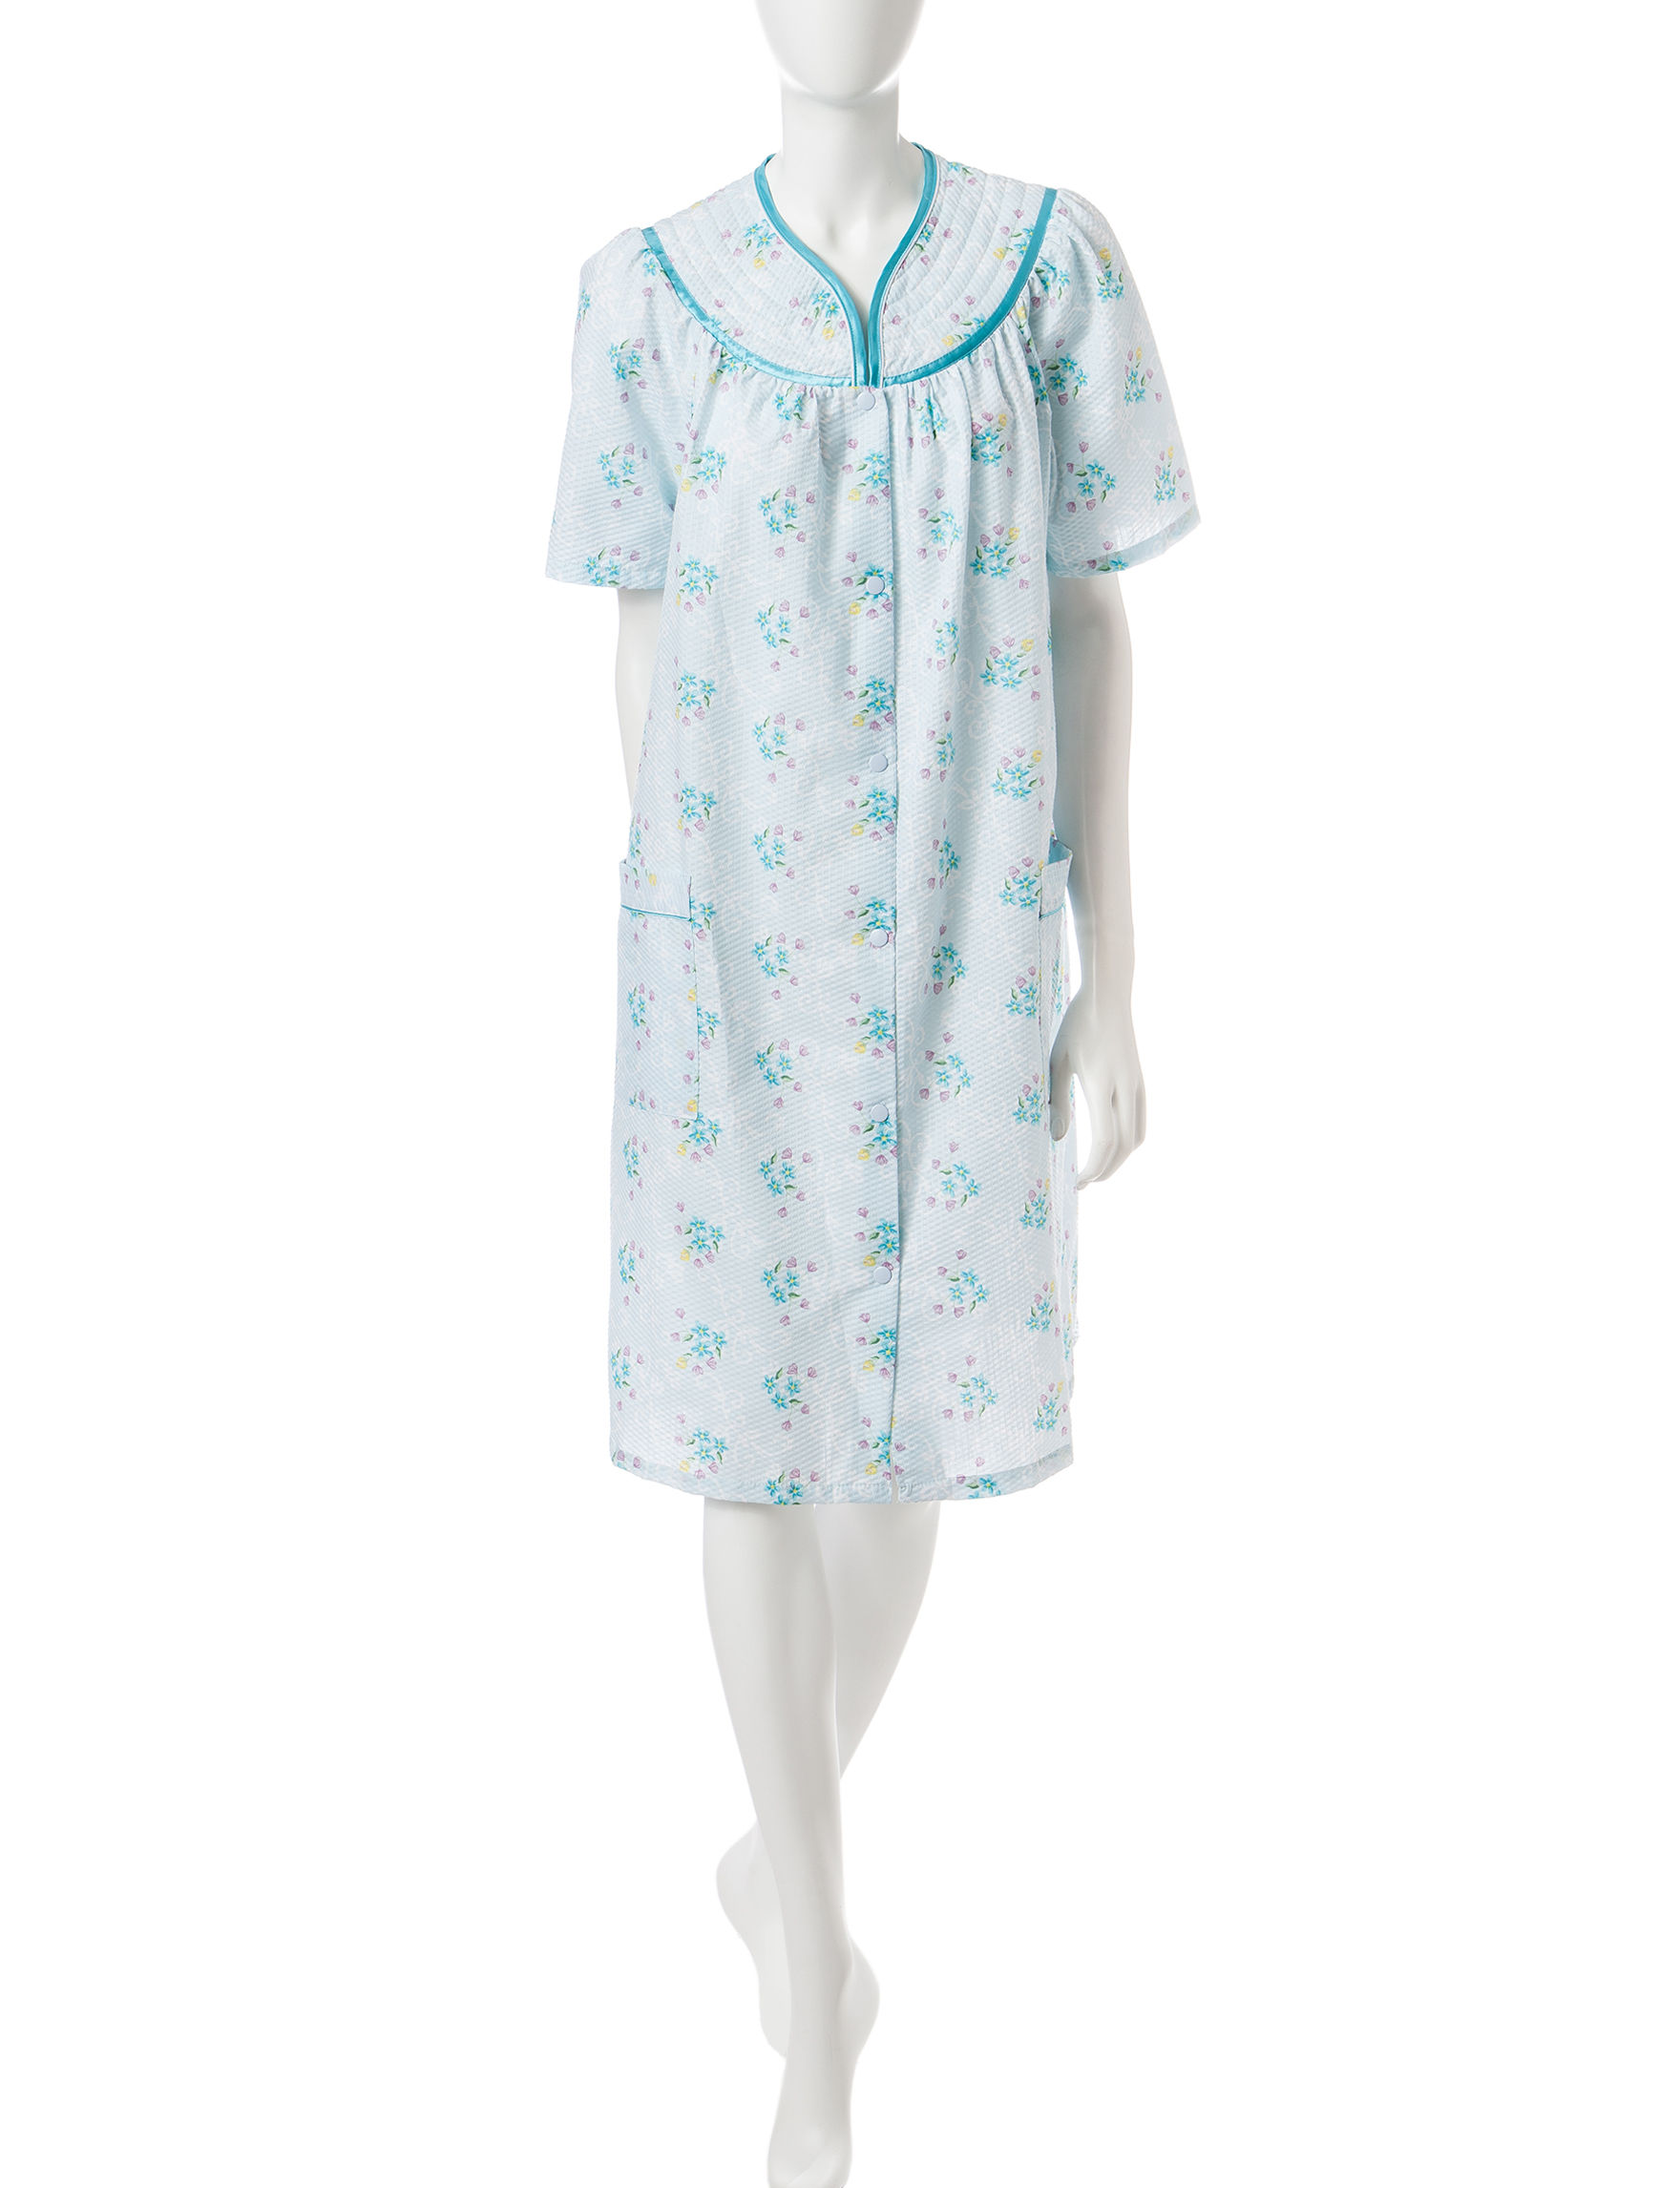 Jasmine Rose Blue Robes, Wraps & Dusters